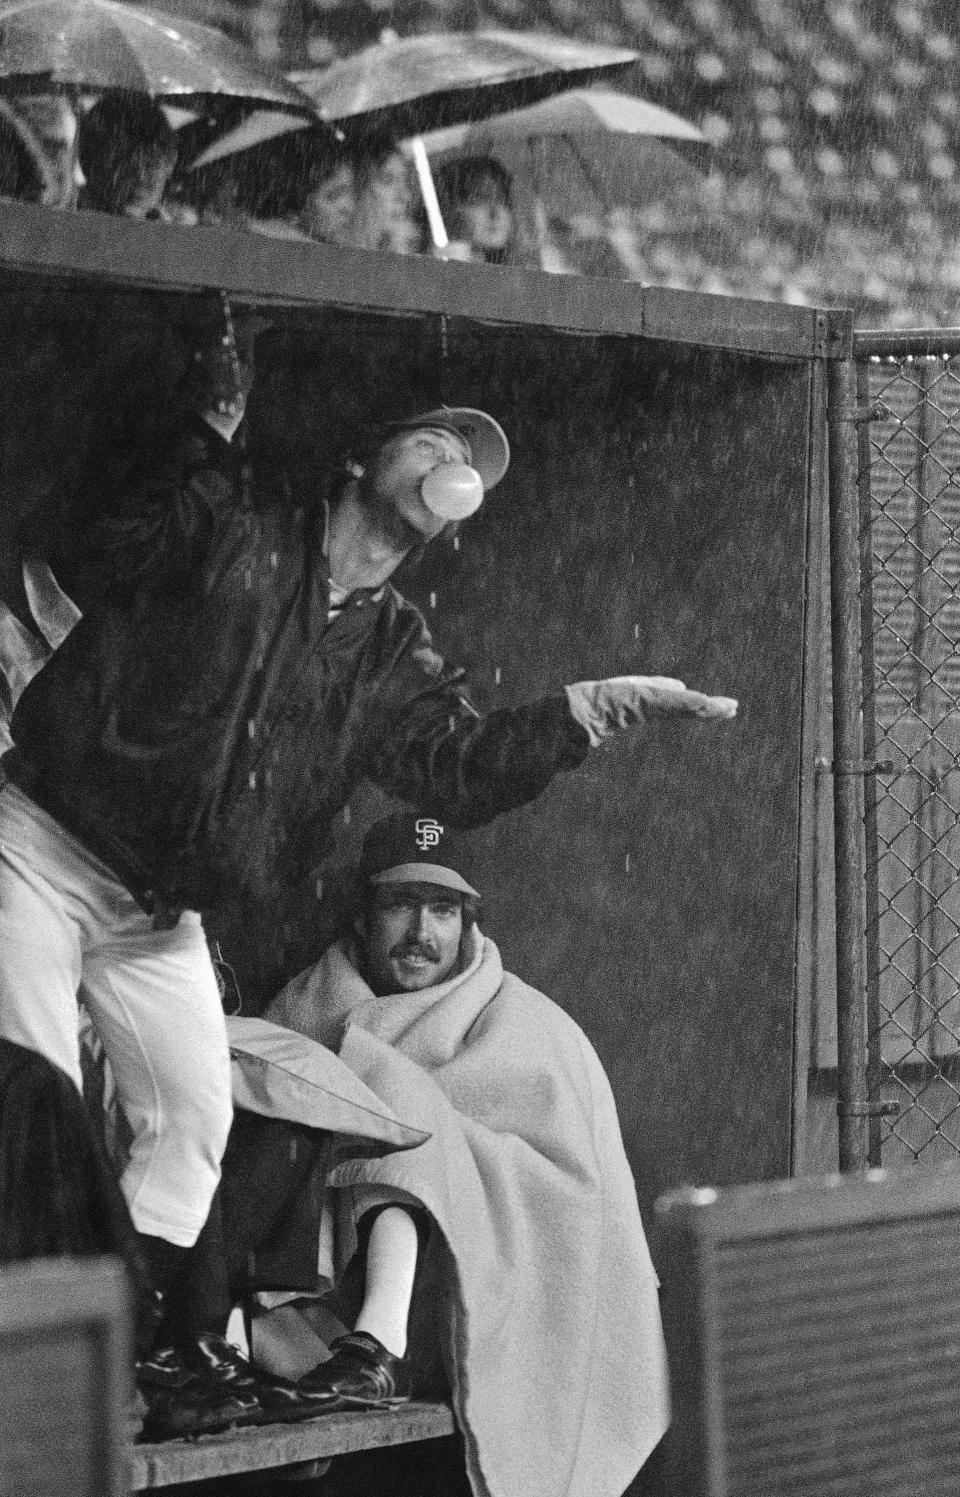 FILE - In this April 1980 file photo, San Francisco Giants catcher Mike Sadek checks the weather as teammate Greg Minton chooses to keep warm under a blanket as the Giants sat out a rain delay before a baseball game with the Cincinnati Reds in Cincinnati. Sadek, a popular backup catcher who played all eight of his major league seasons with the Giants, has died. He was 74. The team announced Sadek died Wednesday, Jan. 20, 2021, in San Andreas, Calif., following a short illness. (AP Photo, File)